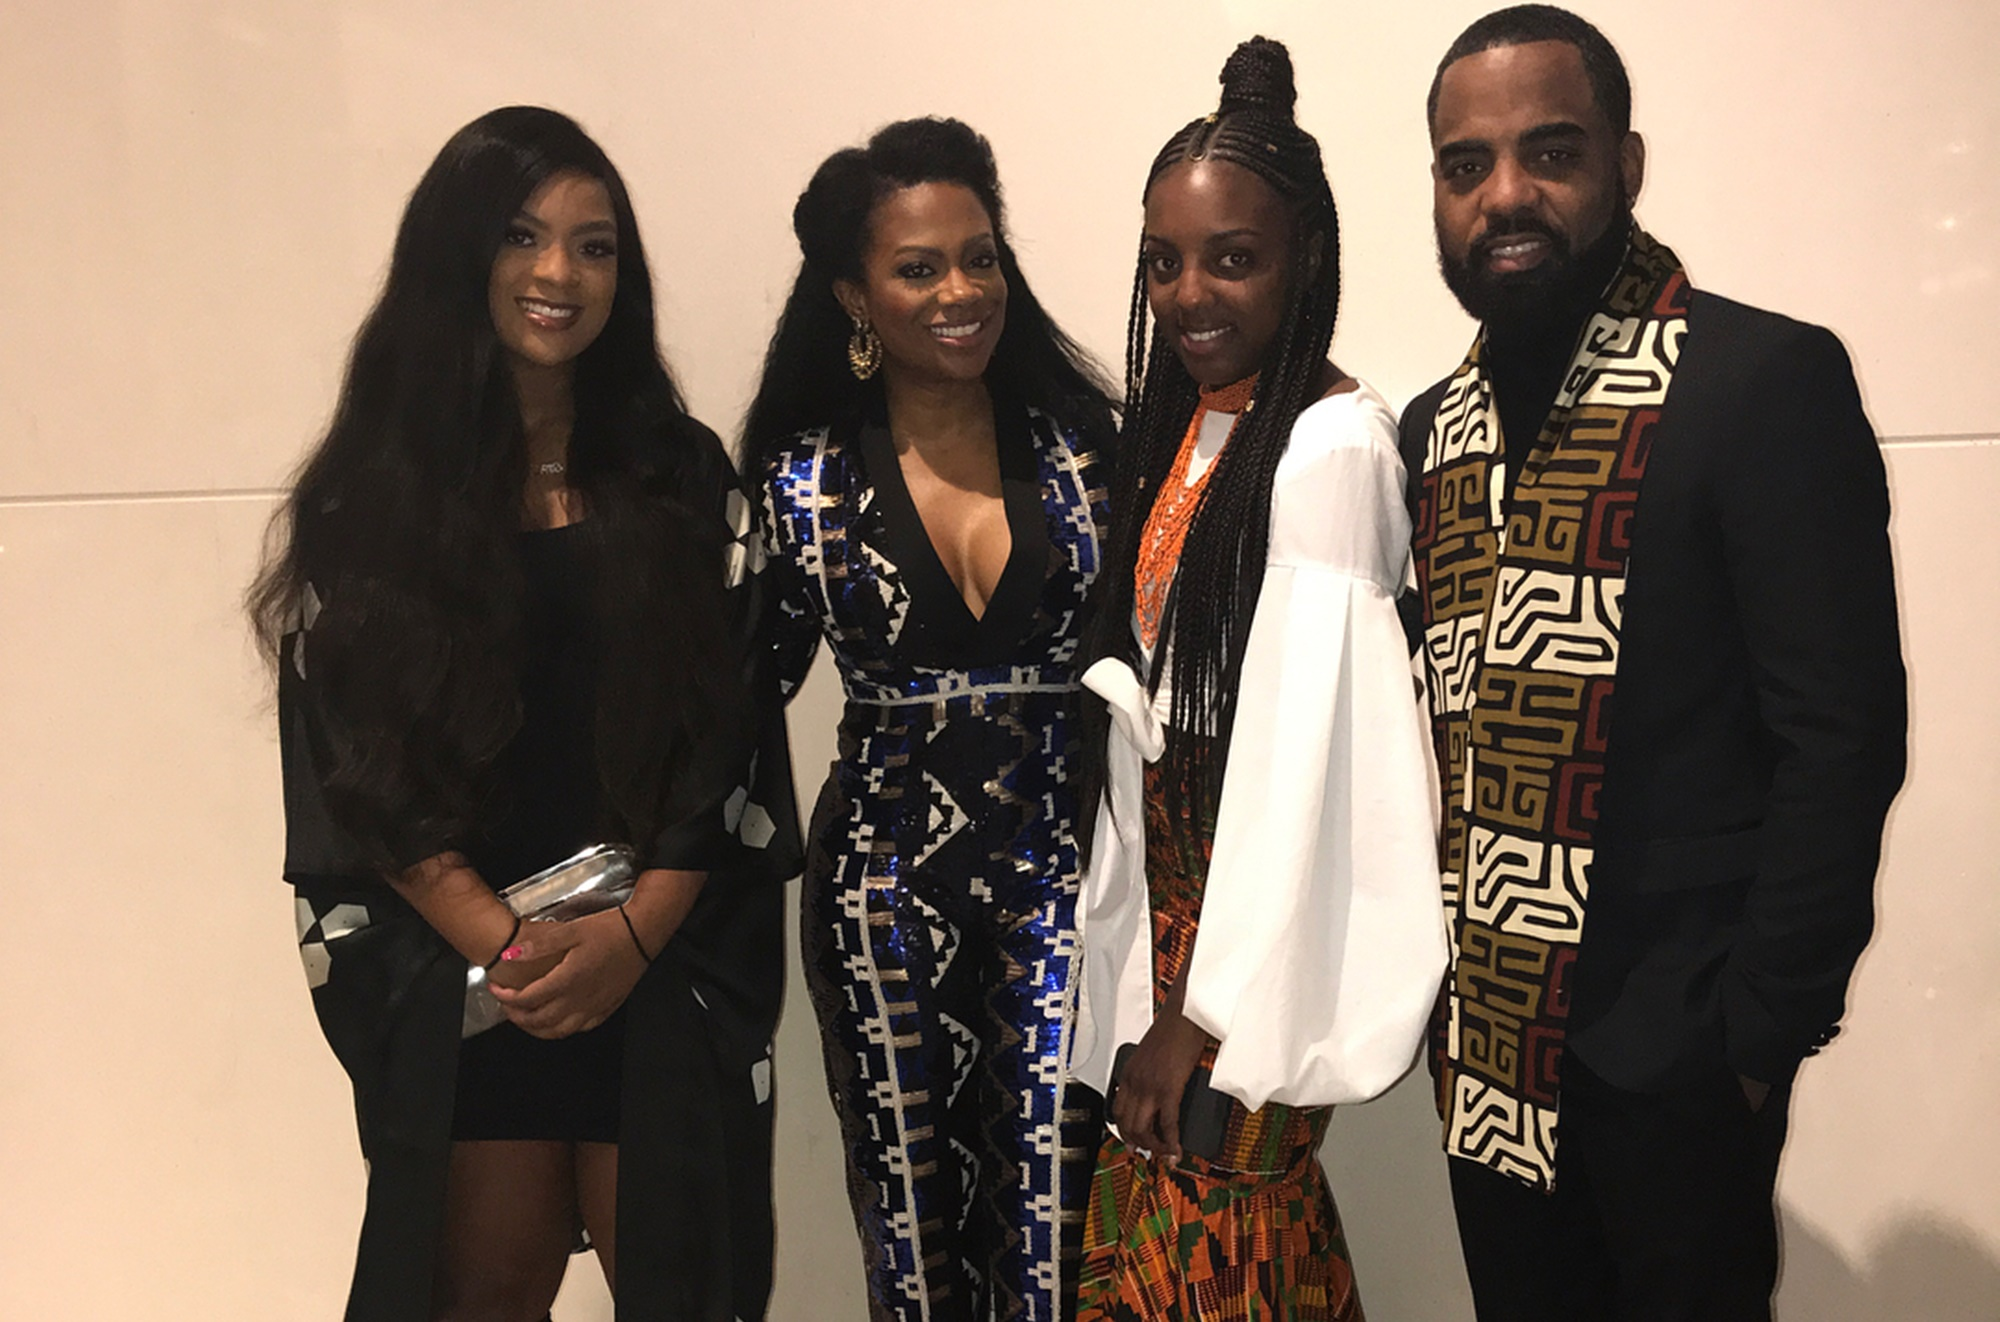 todd-tuckers-daughter-kaela-tucker-showed-up-at-one-of-kandi-burruss-representations-of-the-welcome-to-the-dungeon-show-see-the-reason-why-kandi-apologizes-to-fan